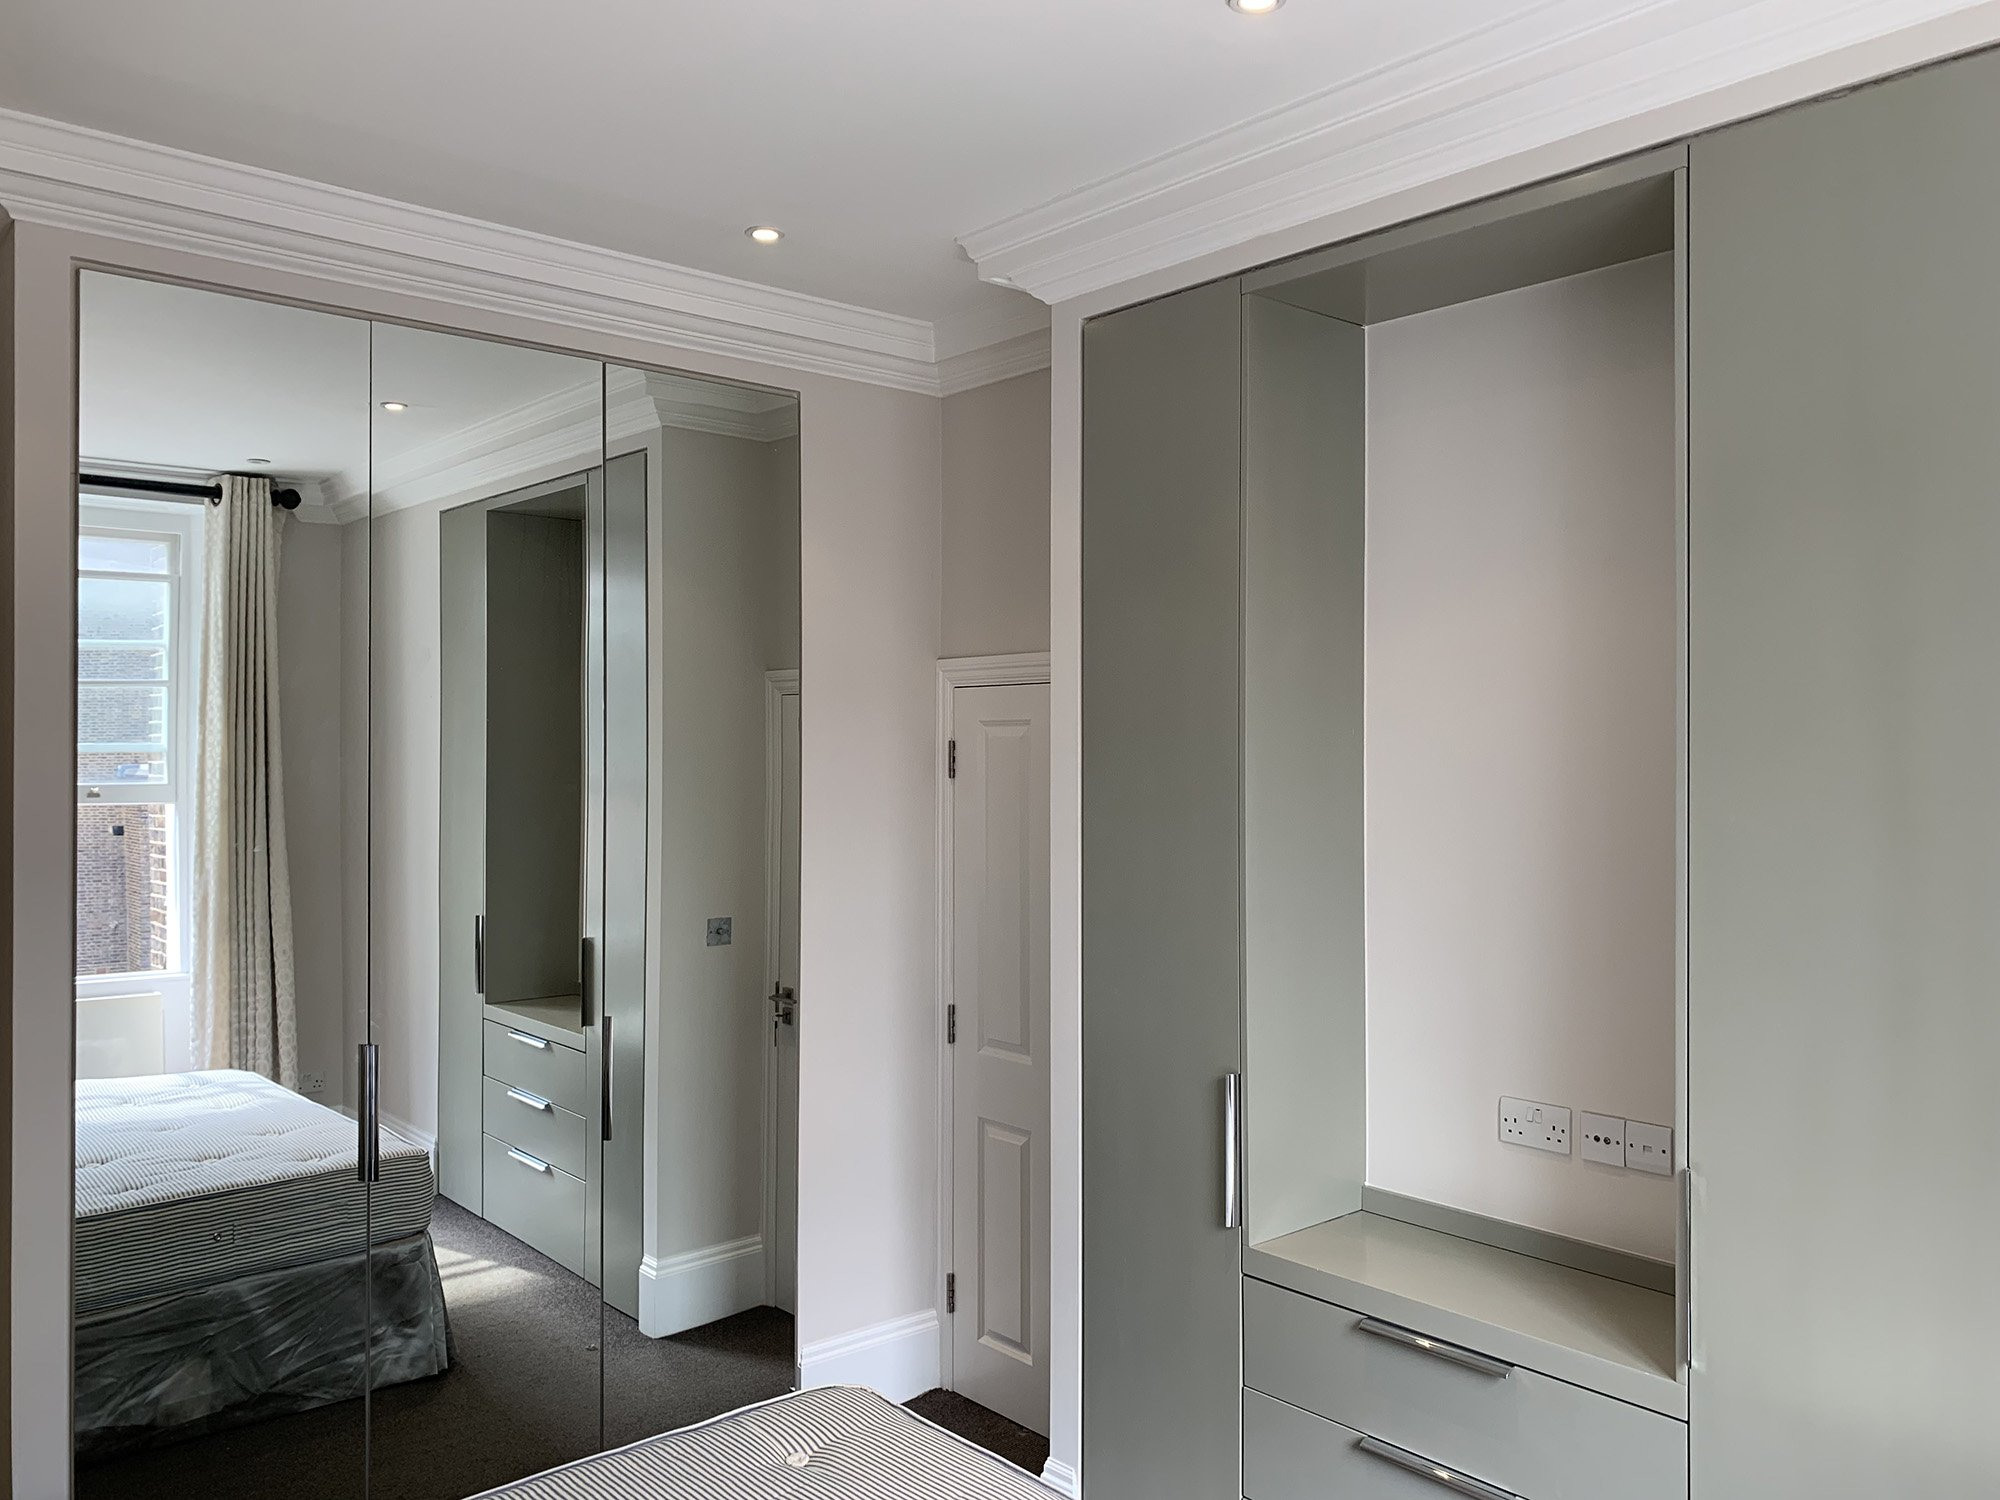 Painting and Decorating a London Investment Property in Paddington - Bedroom